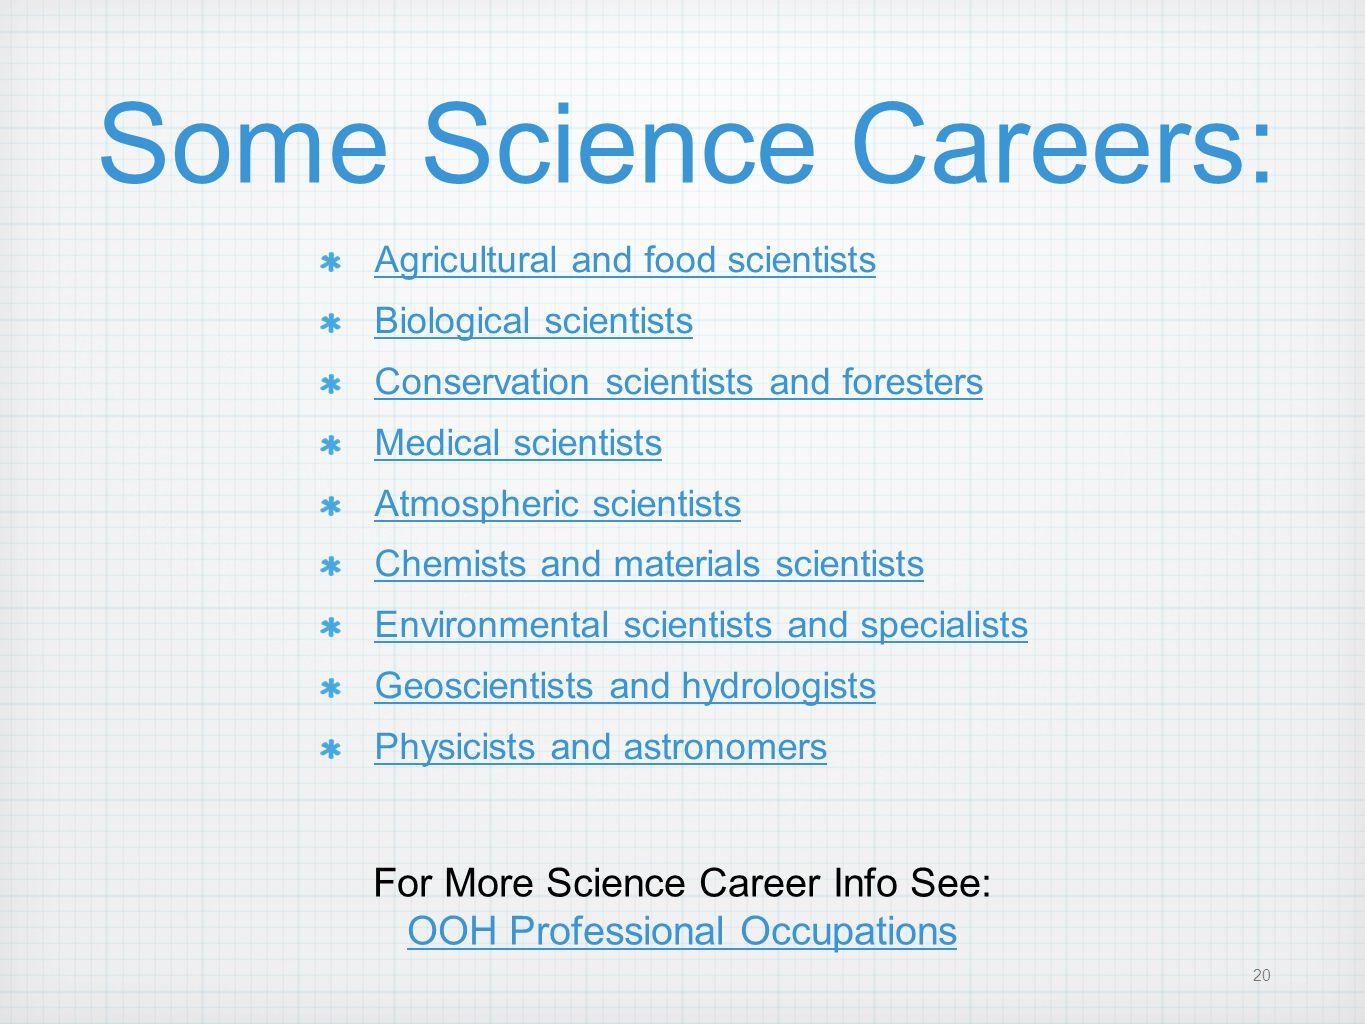 Some Science Careers: For More Science Career Info See: